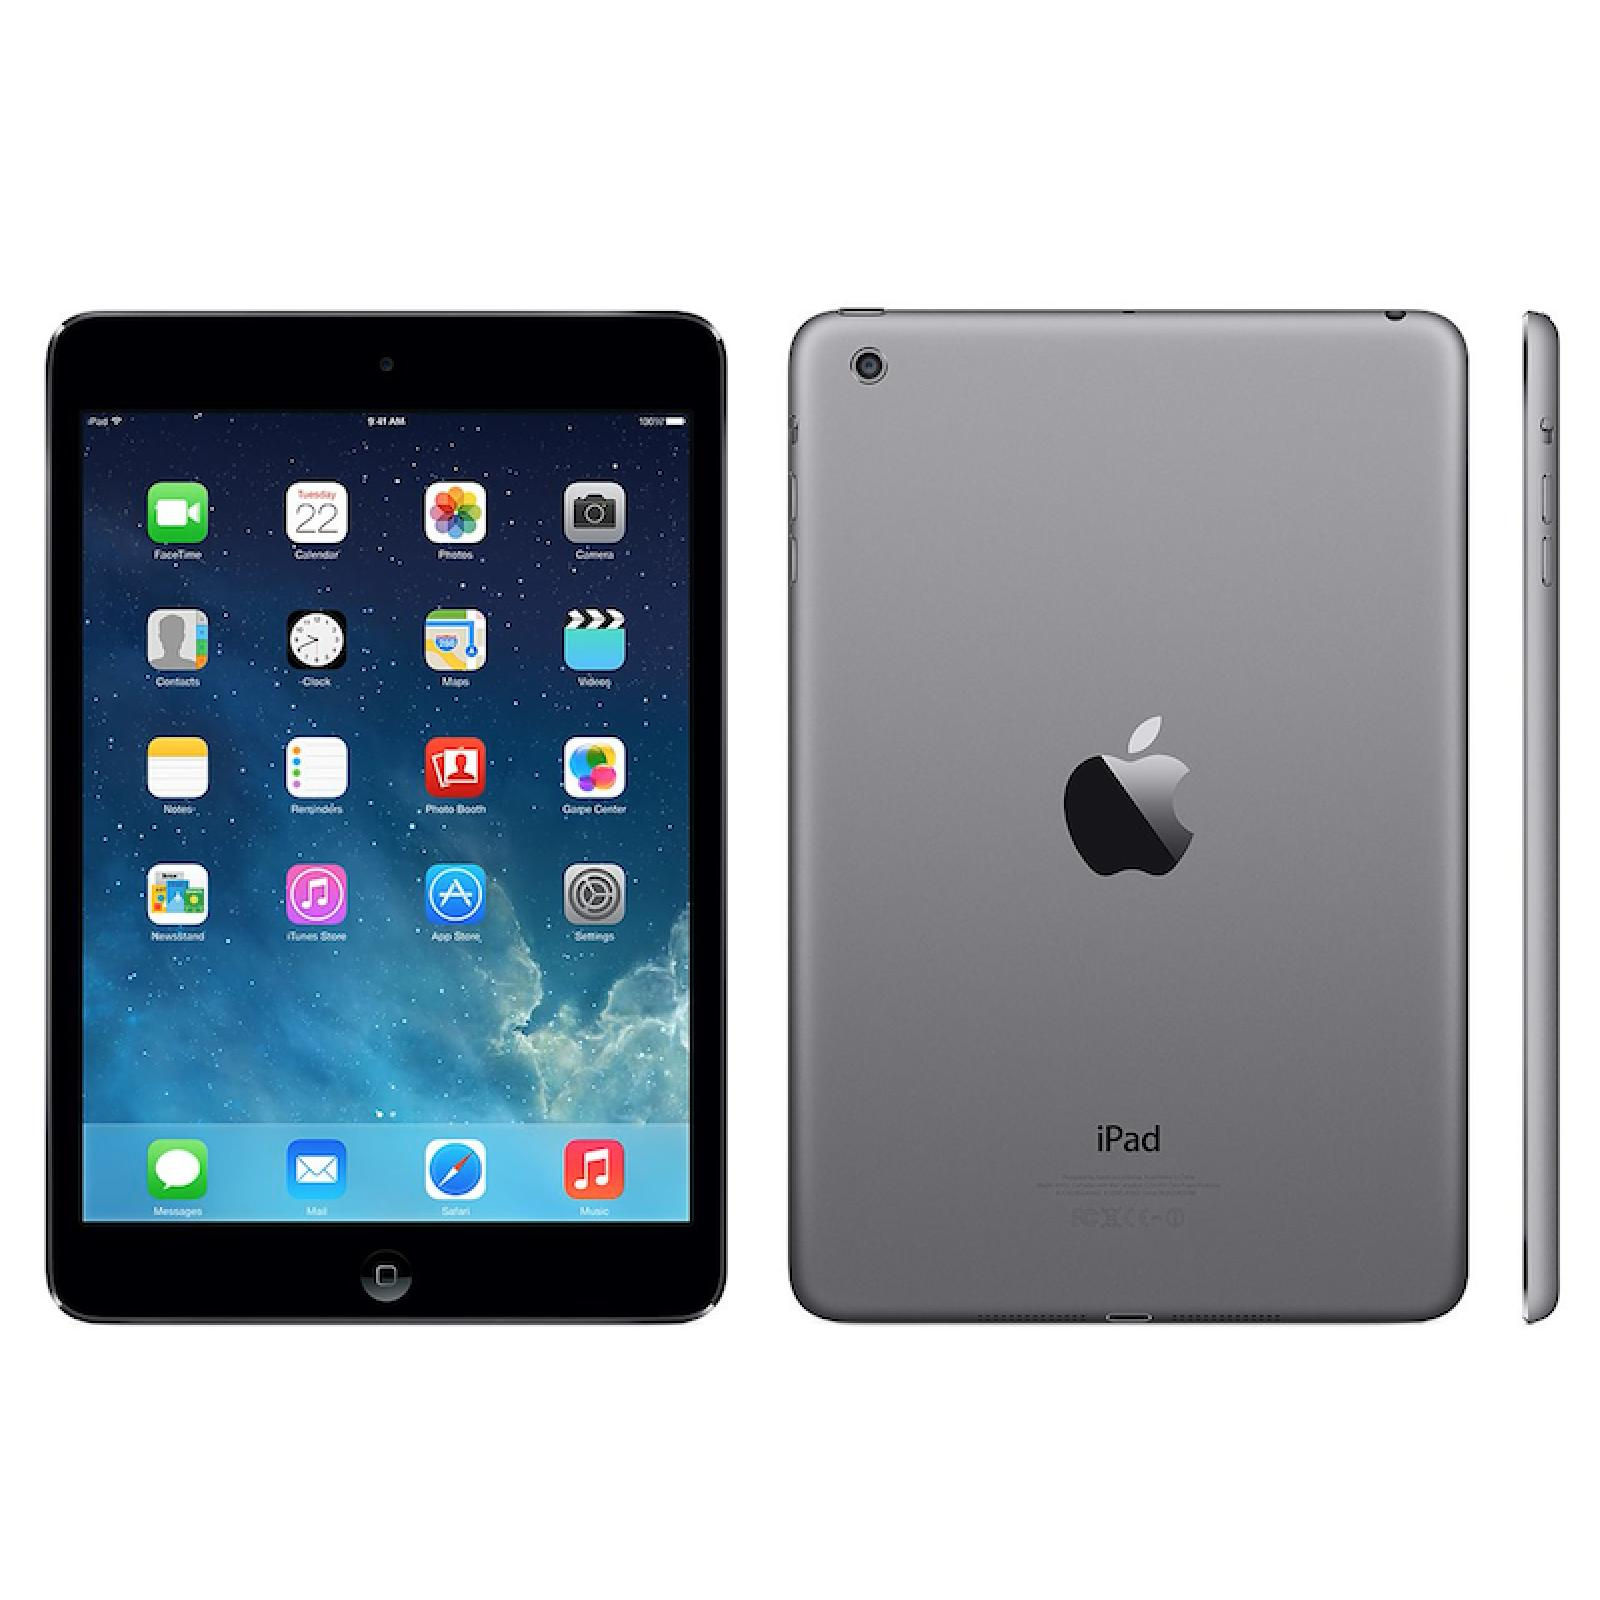 iPad mini 3 16 GB - Wifi - Gris espacial